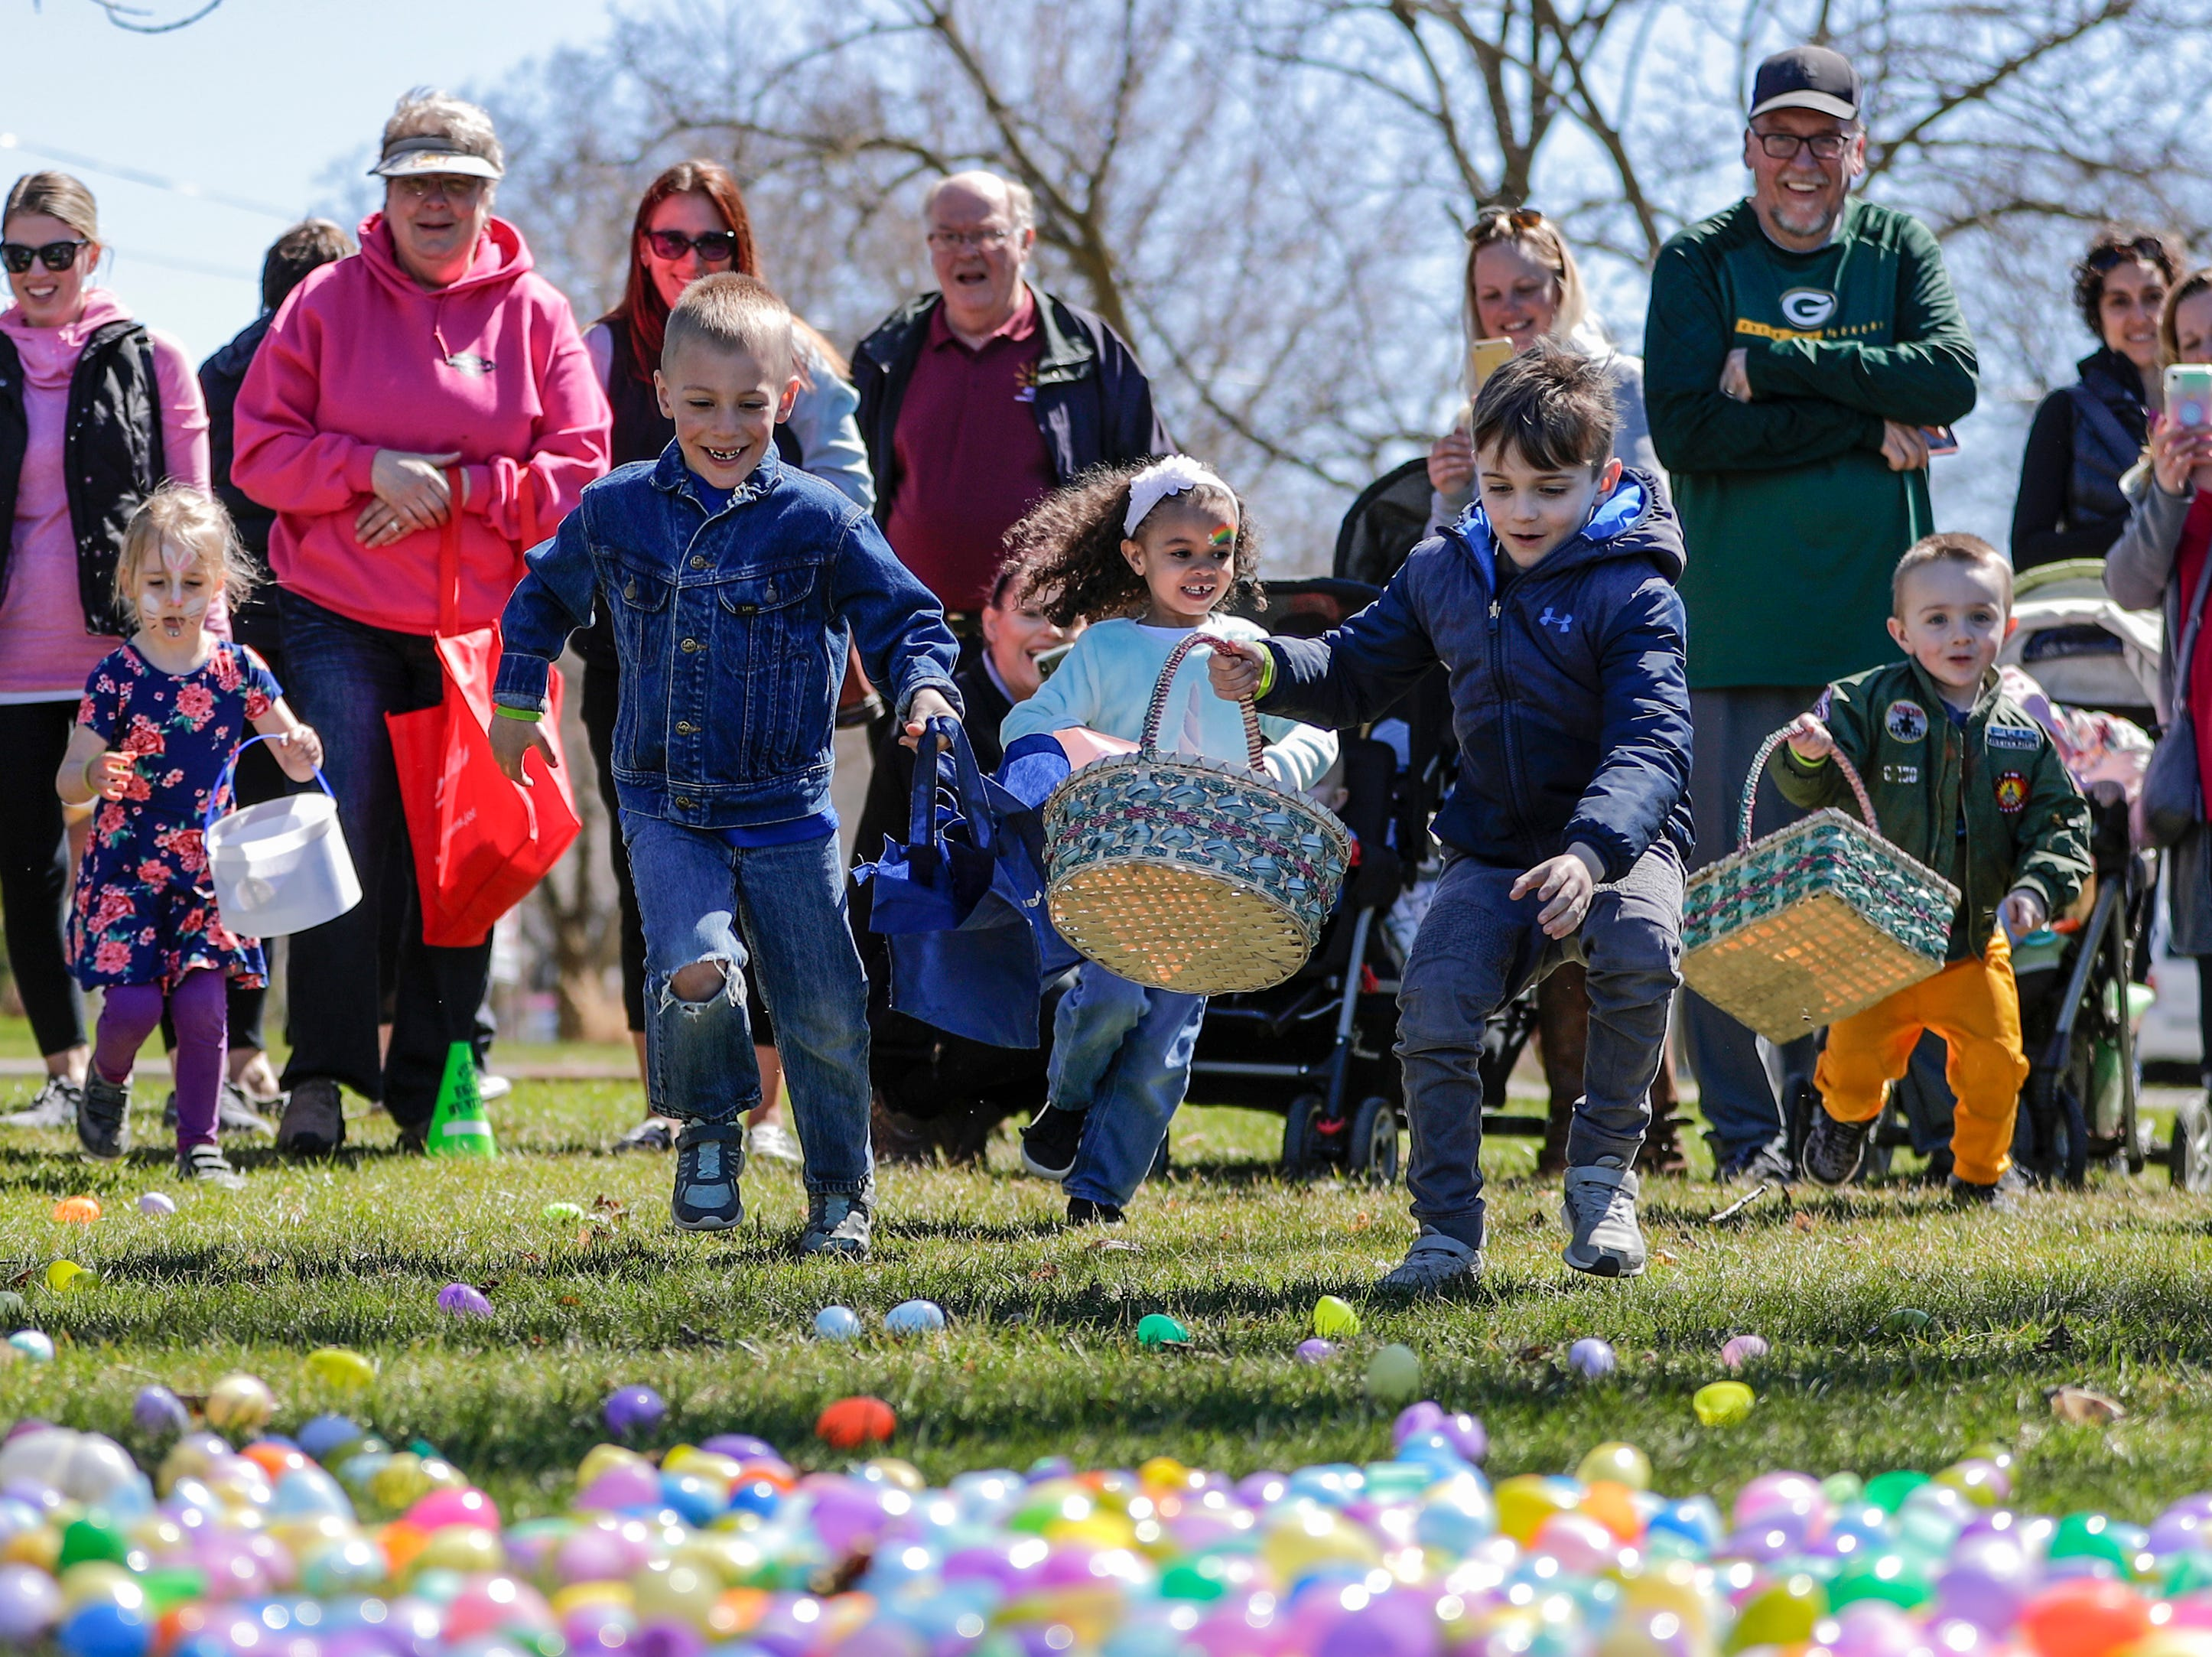 Children rush to plastic Easter eggs at the start of an Easter egg hunt during the Easter Eggstravaganza at Citizen Park Saturday, April 20, 2019, in Manitowoc, Wis. Joshua Clark/USA TODAY NETWORK-Wisconsin